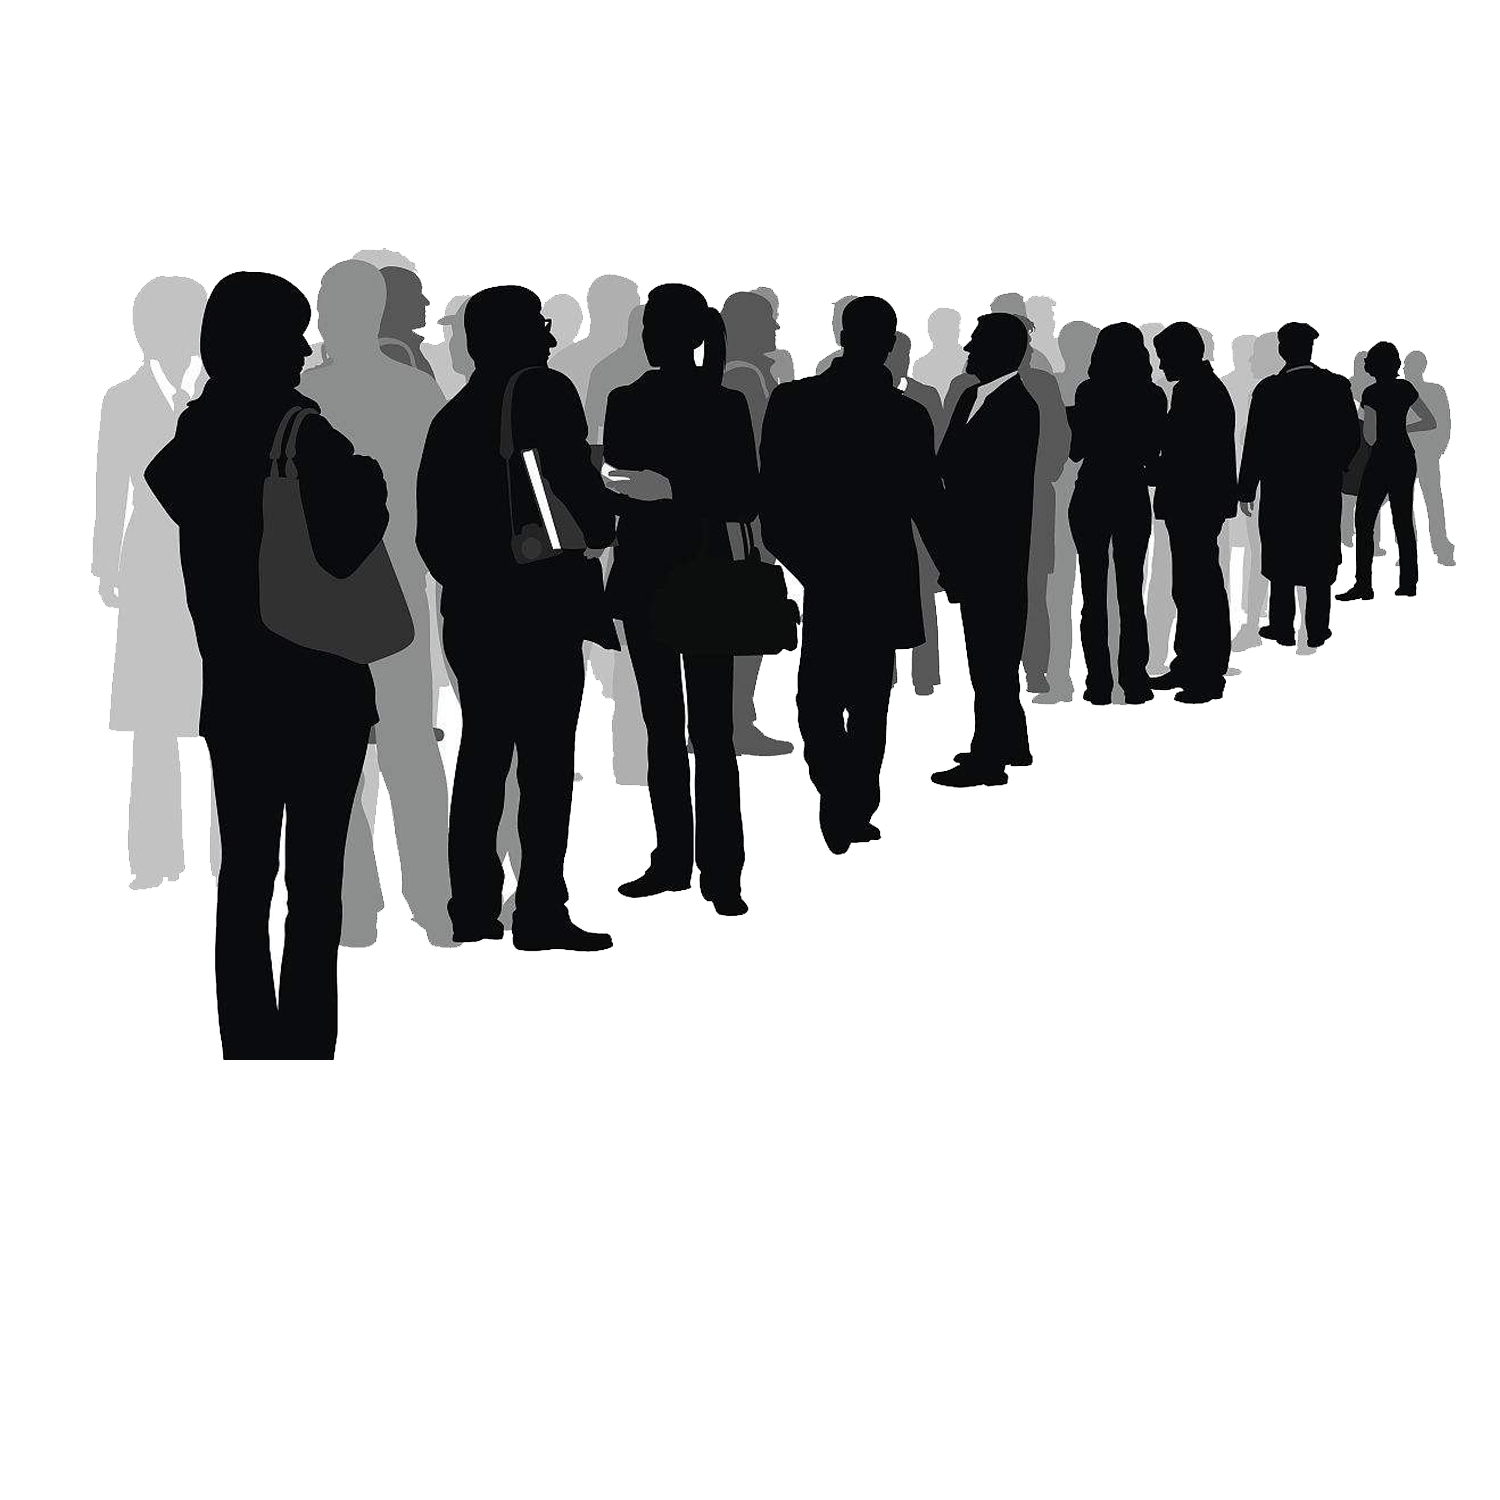 Silhouette Crowd Drawing Illustration.